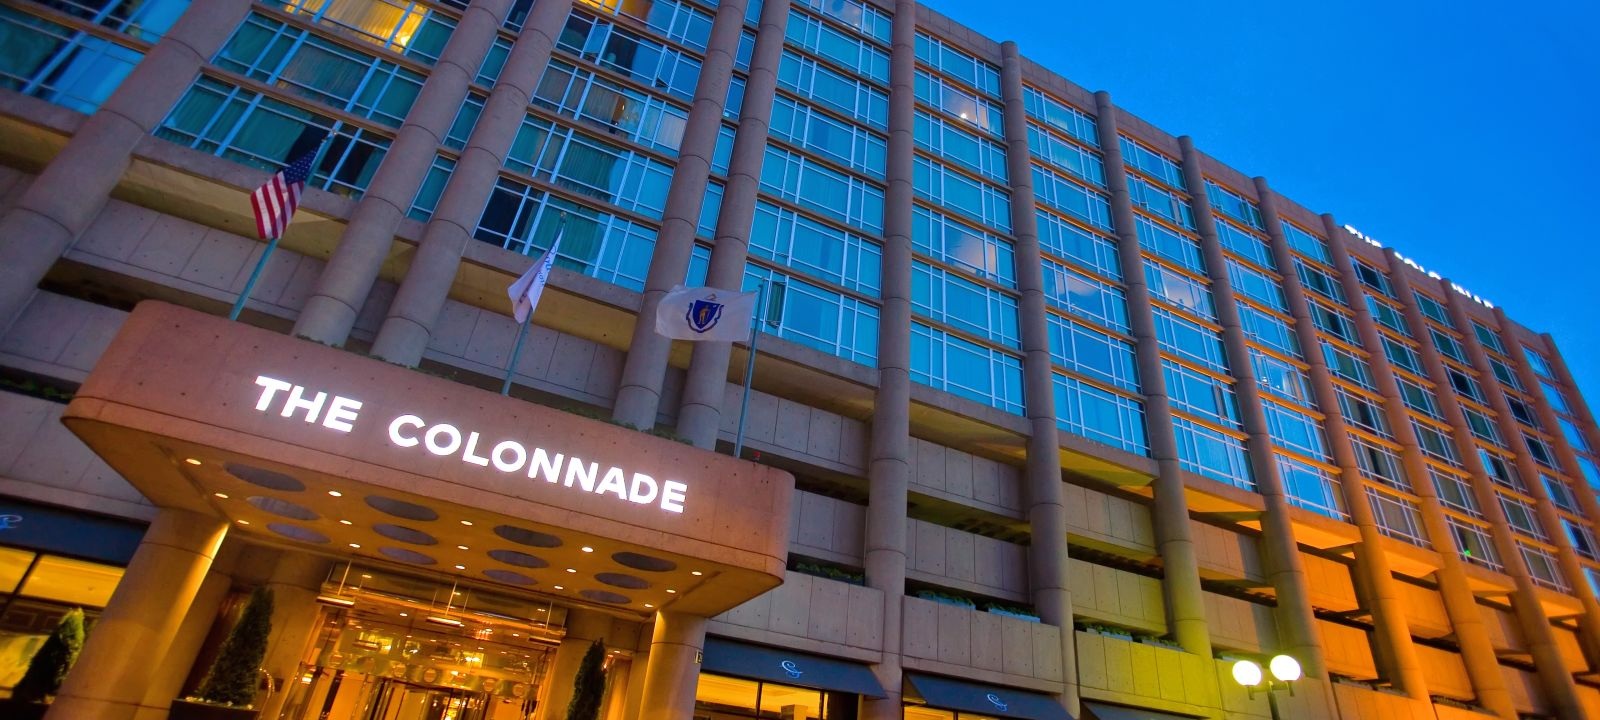 Contact | The Colonnade Hotel in Back Bay, Boston, MA